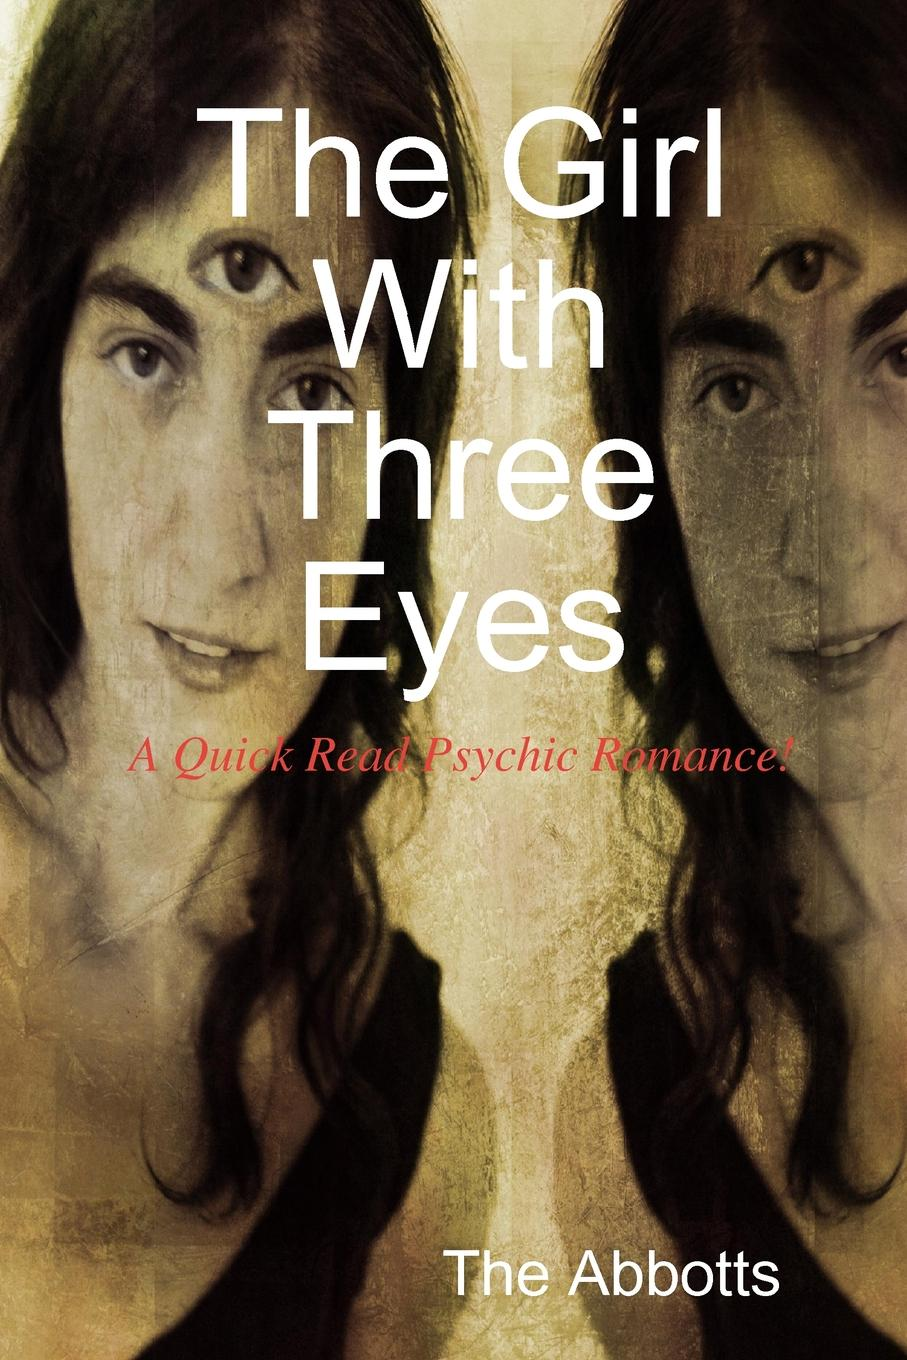 The Abbotts The Girl With Three Eyes - A Quick Read Psychic Romance claire seeber the girl with the fragile mind